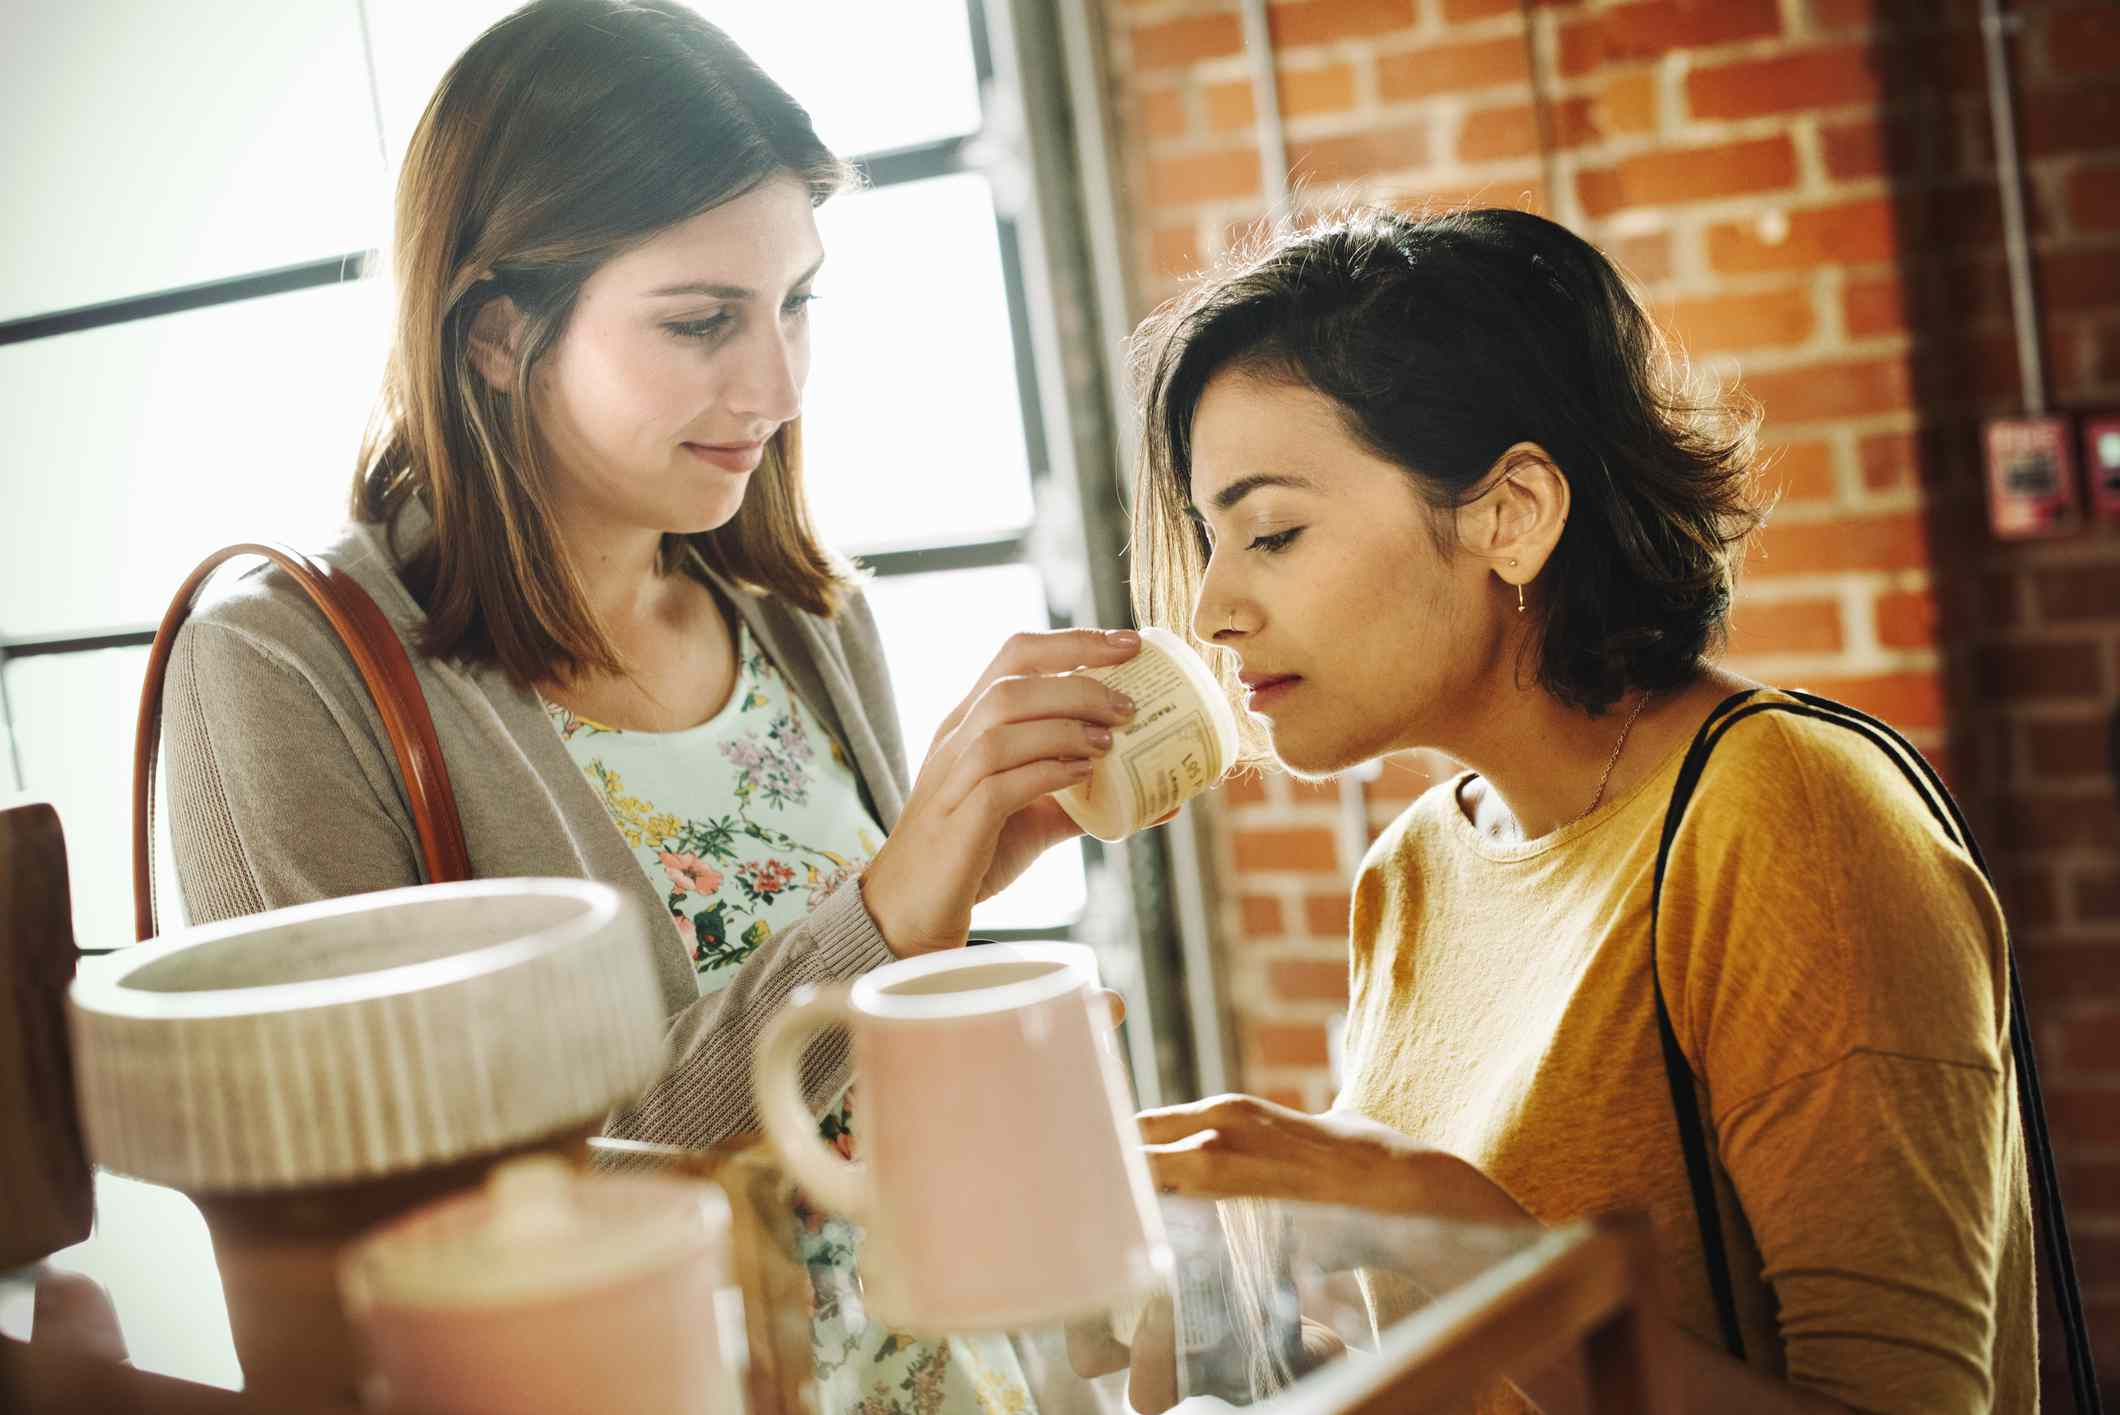 A woman smelling a skincare product with her friend in a shop.